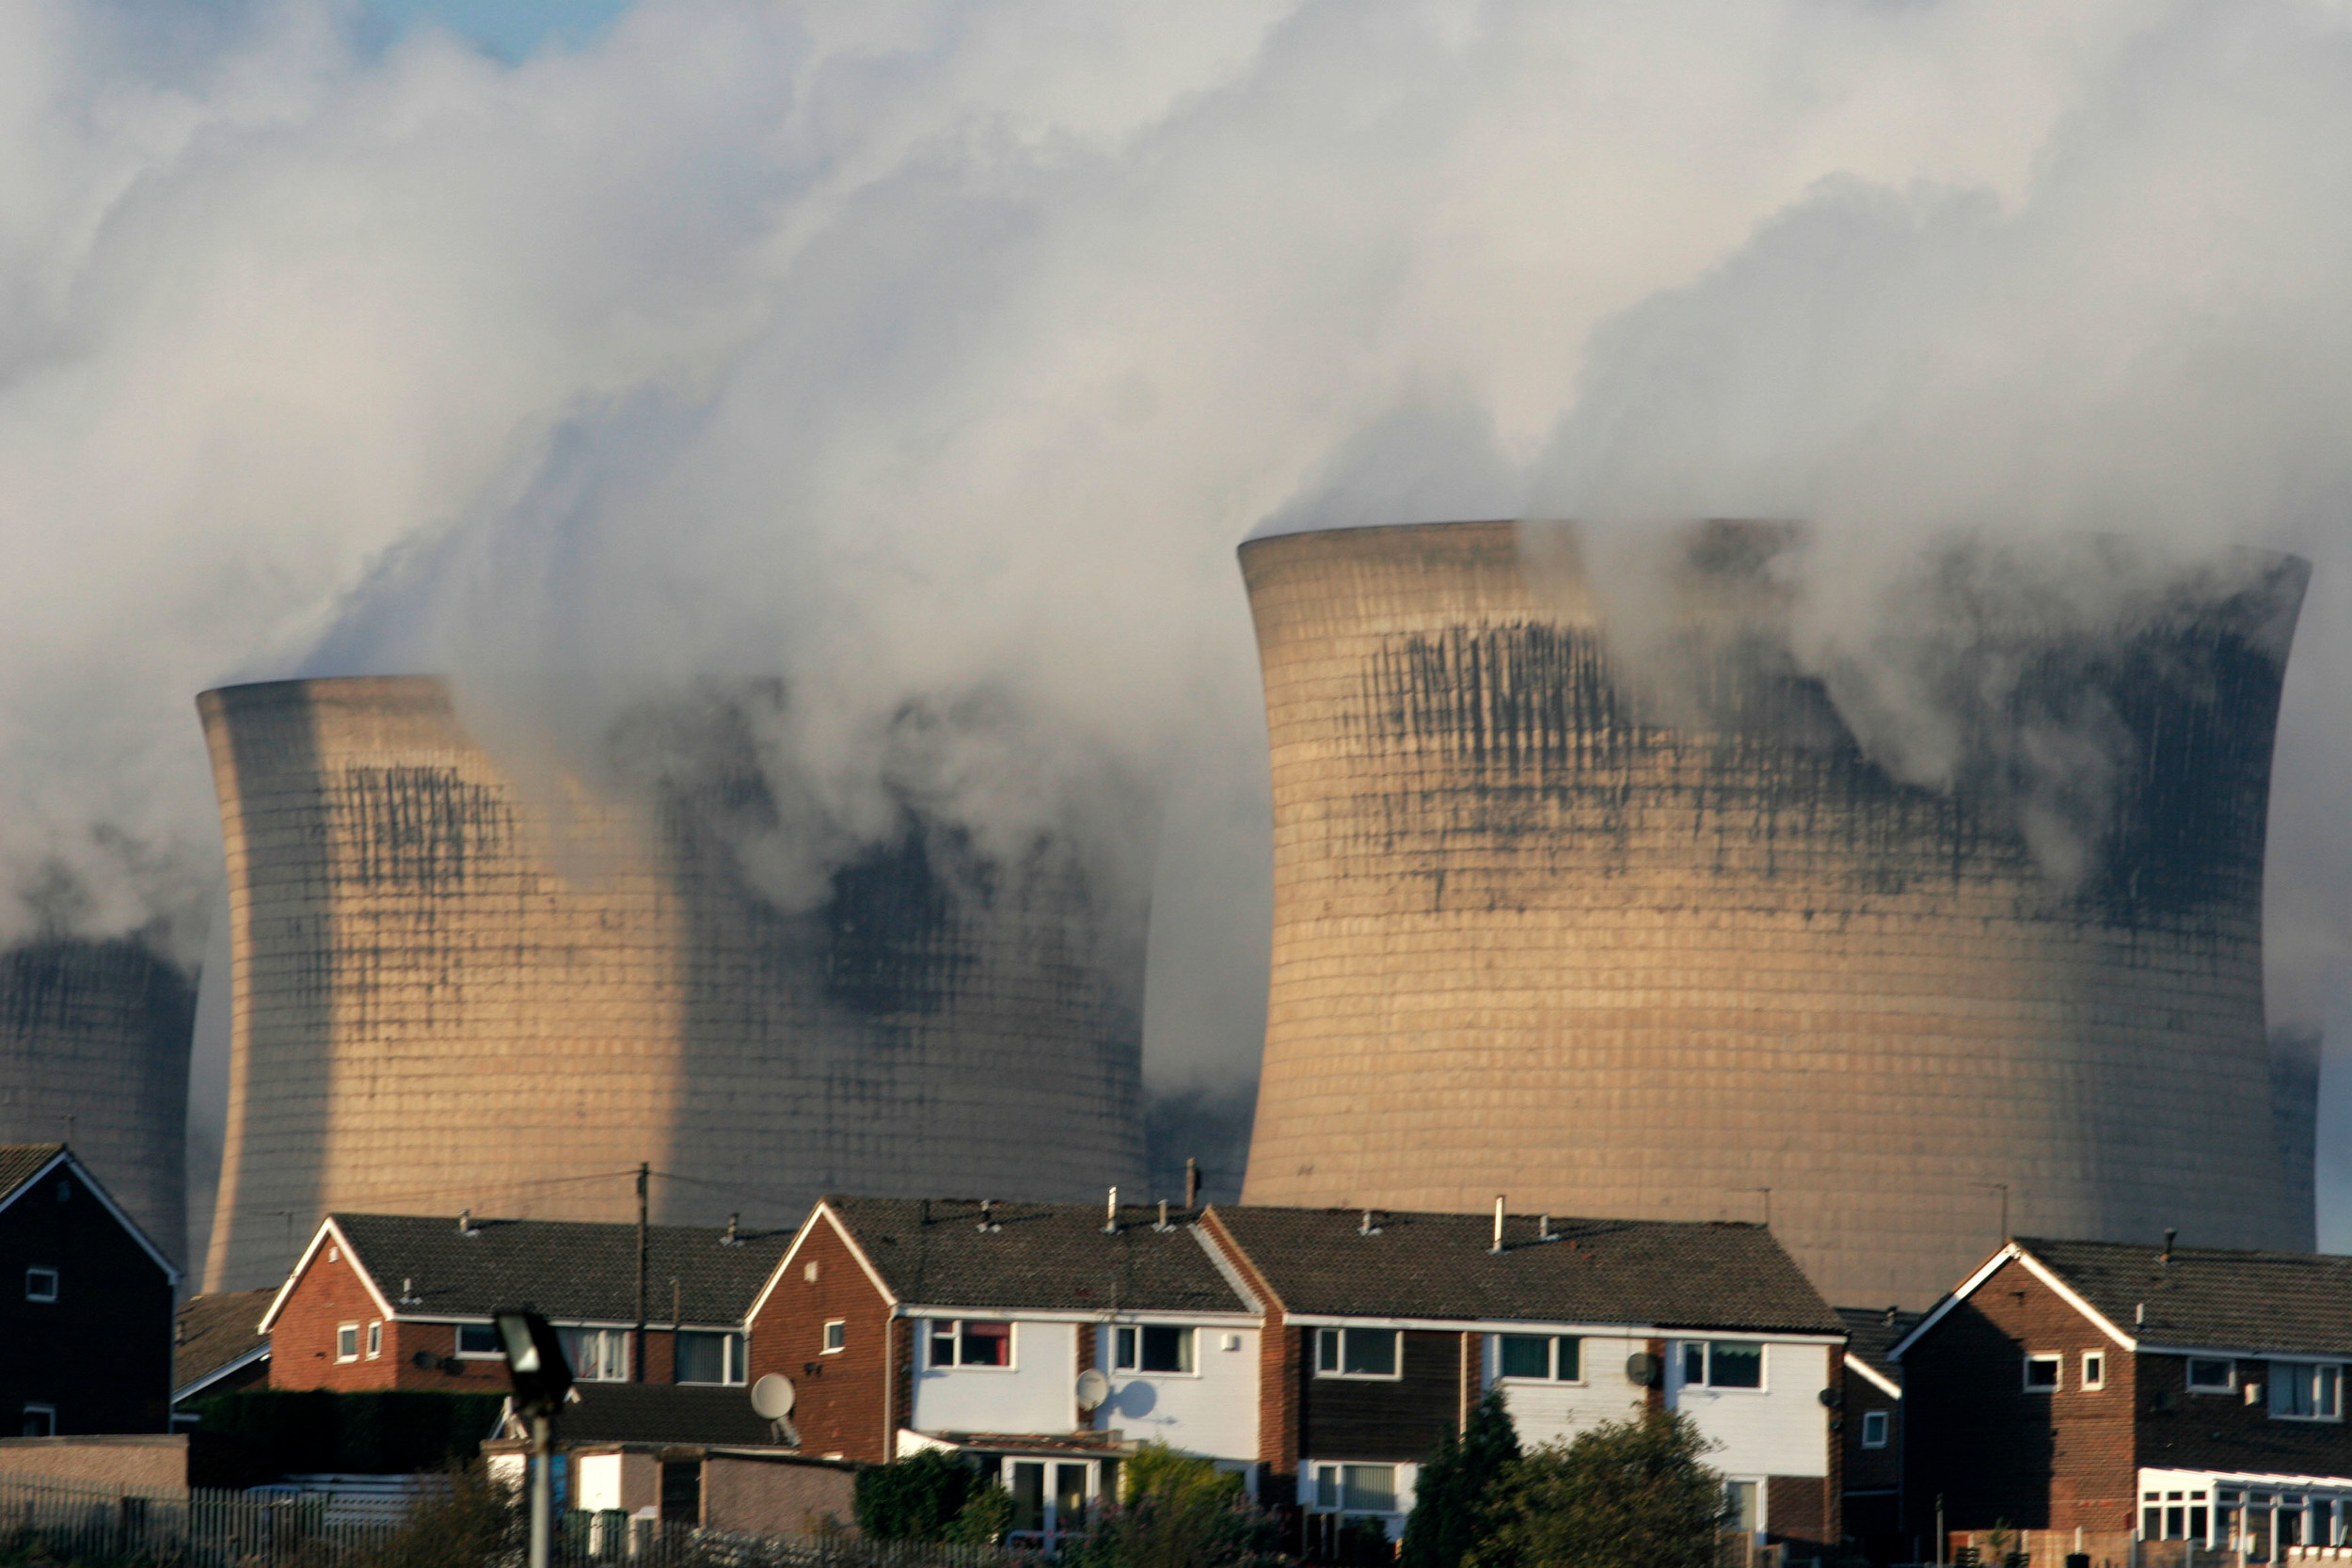 Ferrybridge Power Station in the UK with smoke coming out